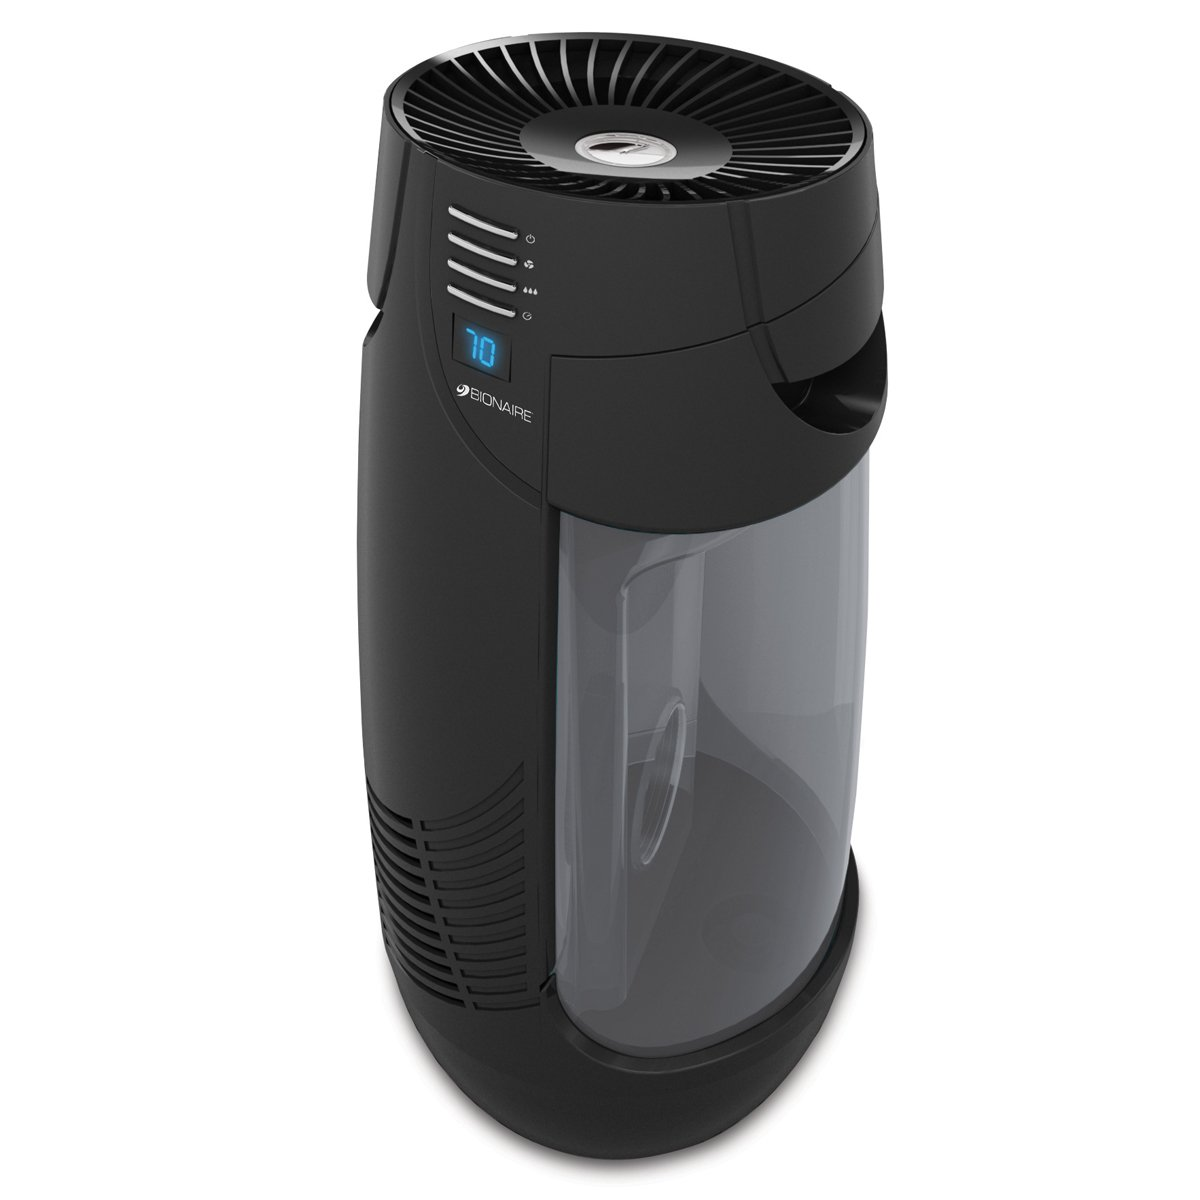 Bionaire® Cool Mist Tower Humidifier BCM730B CN Bionaire® Canada #2A79A1